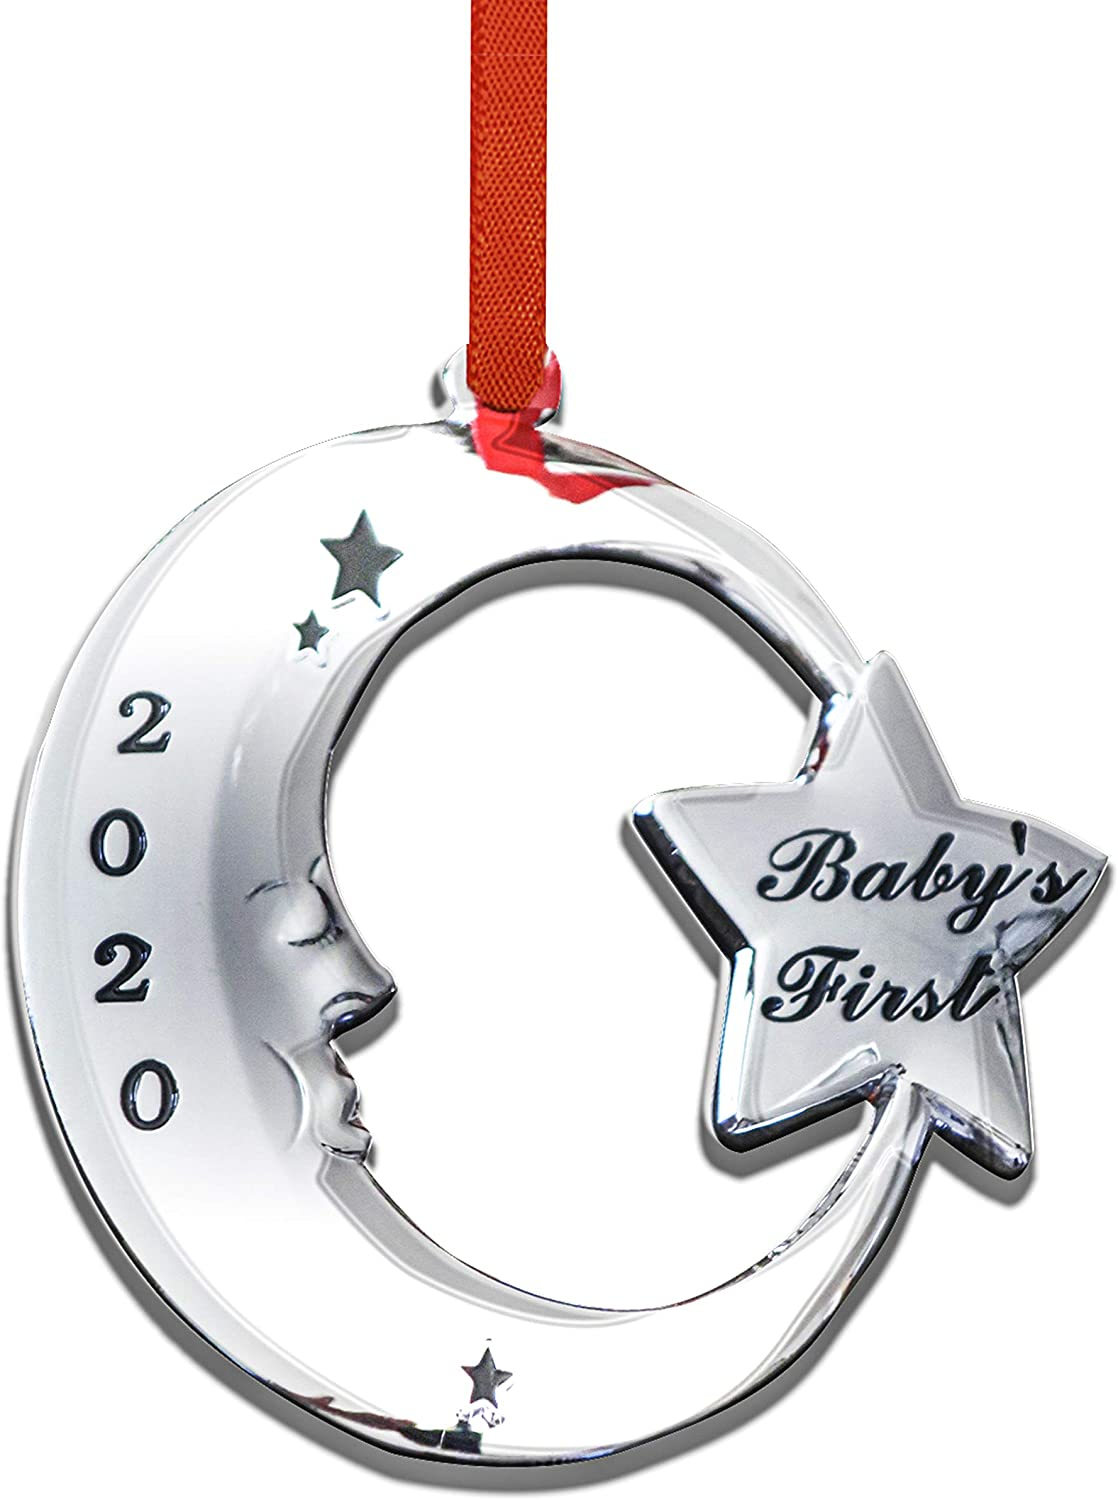 Holiday Jingle Baby First Christmas Ornament 2020 – 3.25 x 3 Inch Moon Design Premium 2020 Ornament - My First Christmas Tree Decoration – Includes Hanging Red Ribbon and Silver Mesh Bag